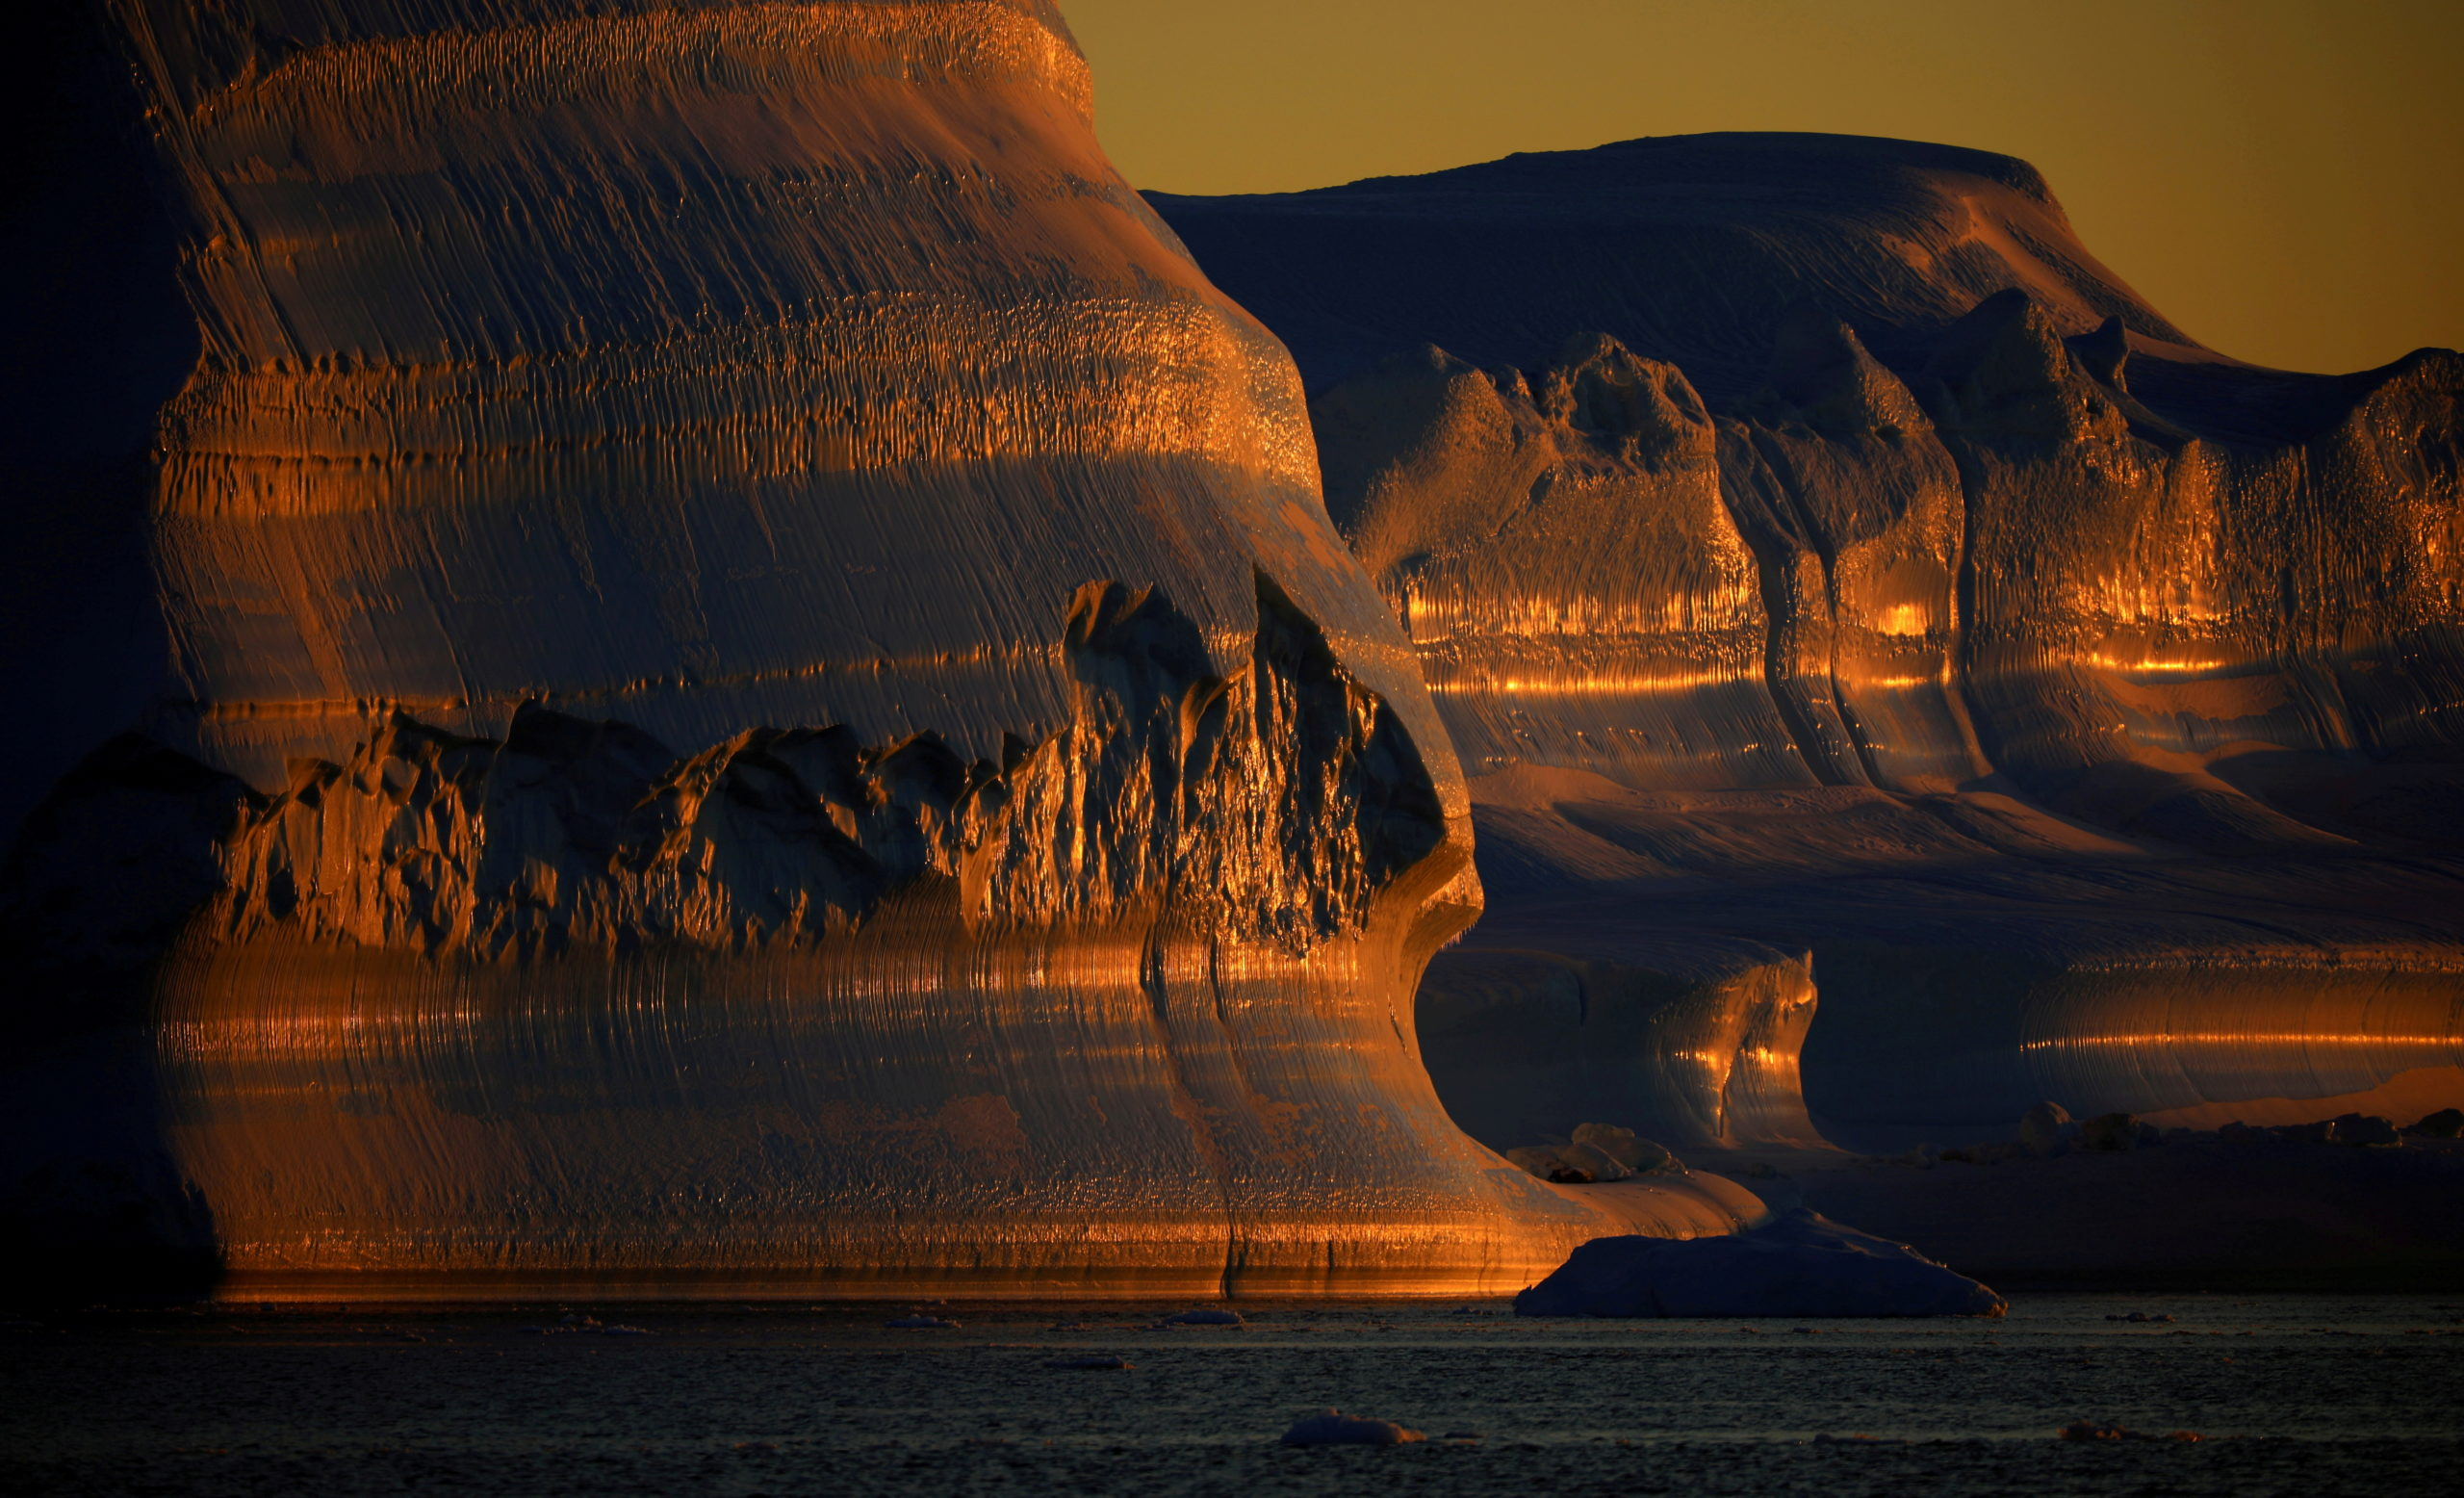 FILE PHOTO: Icebergs are seen at the at the mouth of the Jakobshavns ice fjord during sunset near Ilulissat, Greenland, September 16, 2021. REUTERS/Hannibal Hanschke/File Photo